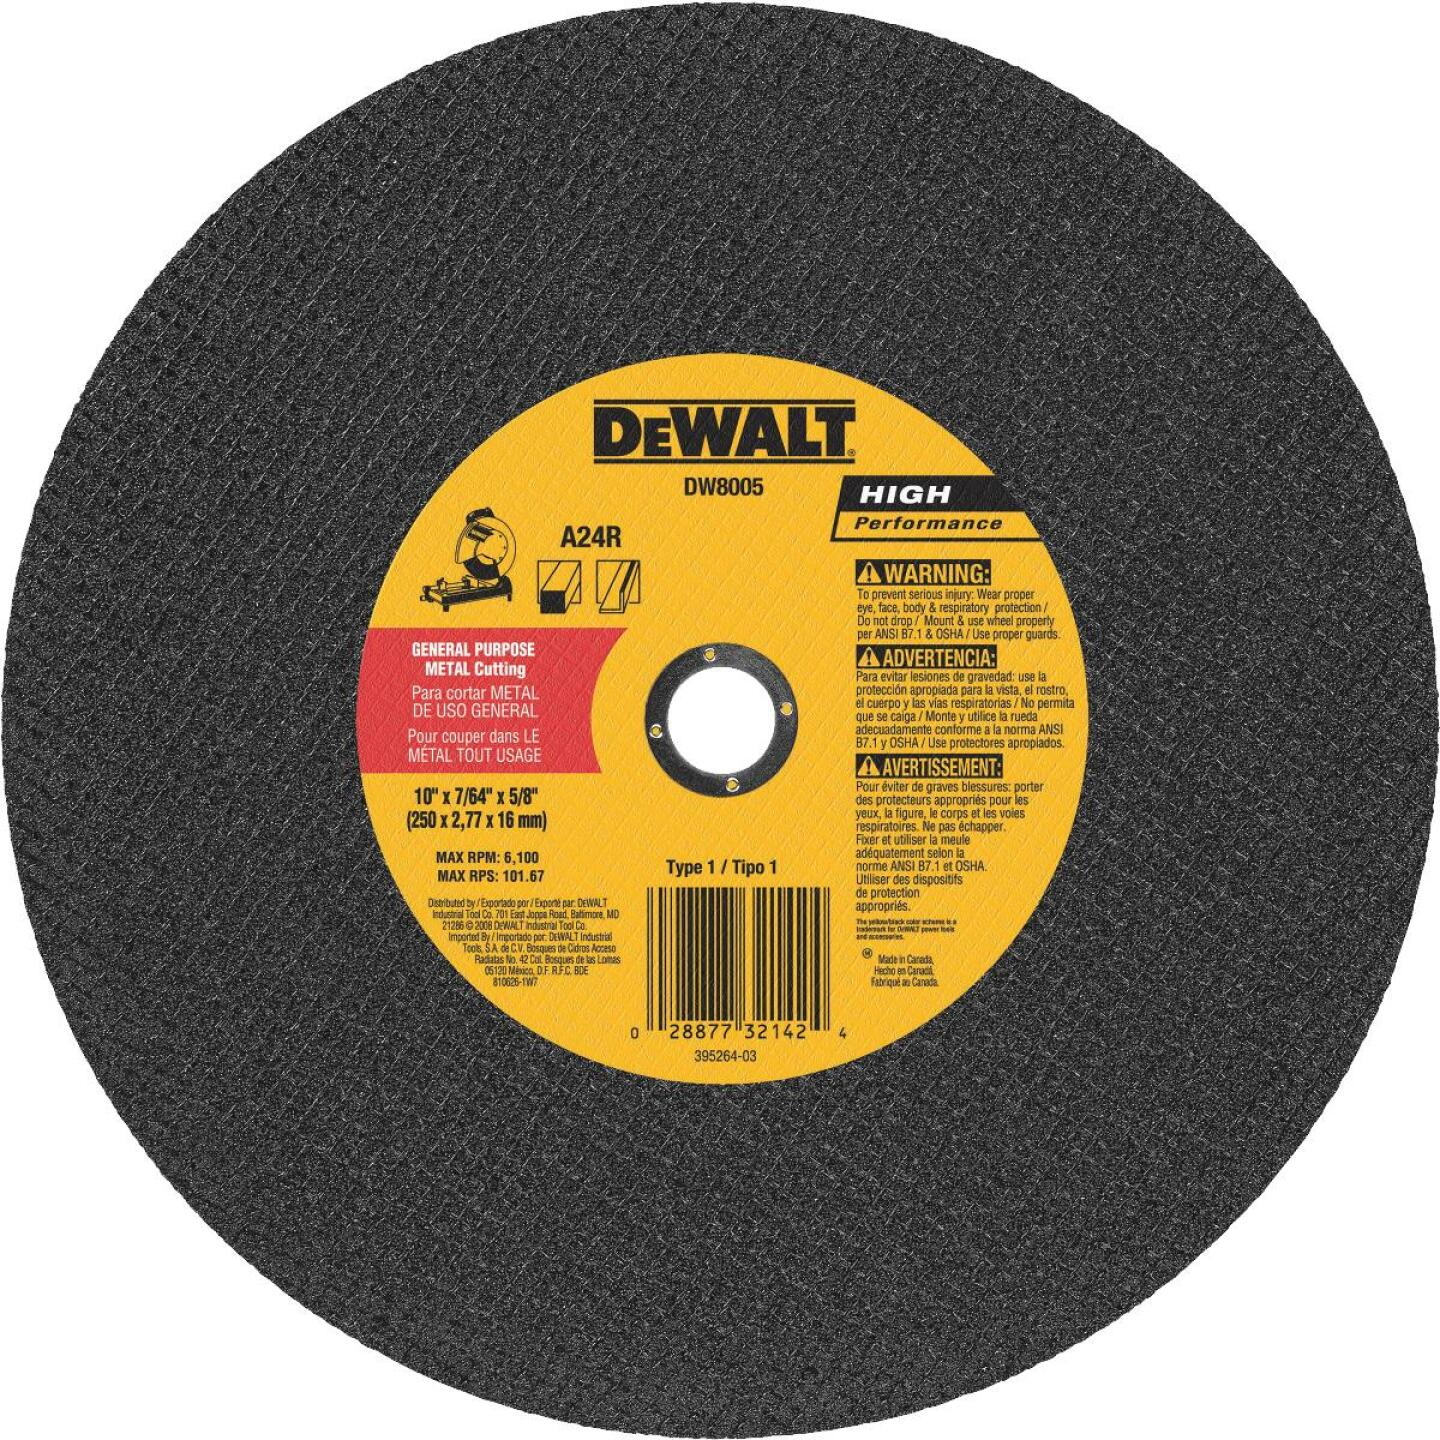 DeWalt HP Type 1 10 In. x 7/64 In. x 5/8 In. Metal Cut-Off Wheel Image 1